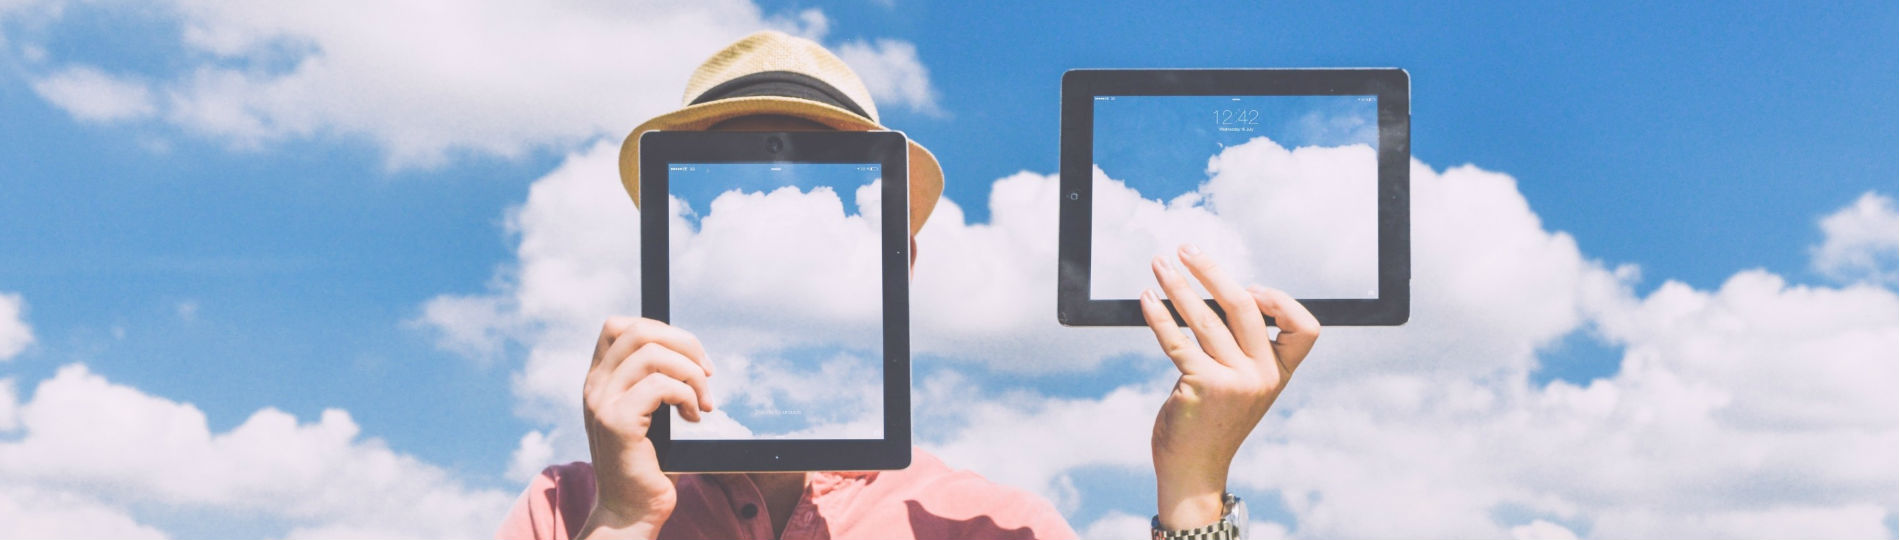 A man holds up two tablets reflecting the sky, one of which is blocking his face.